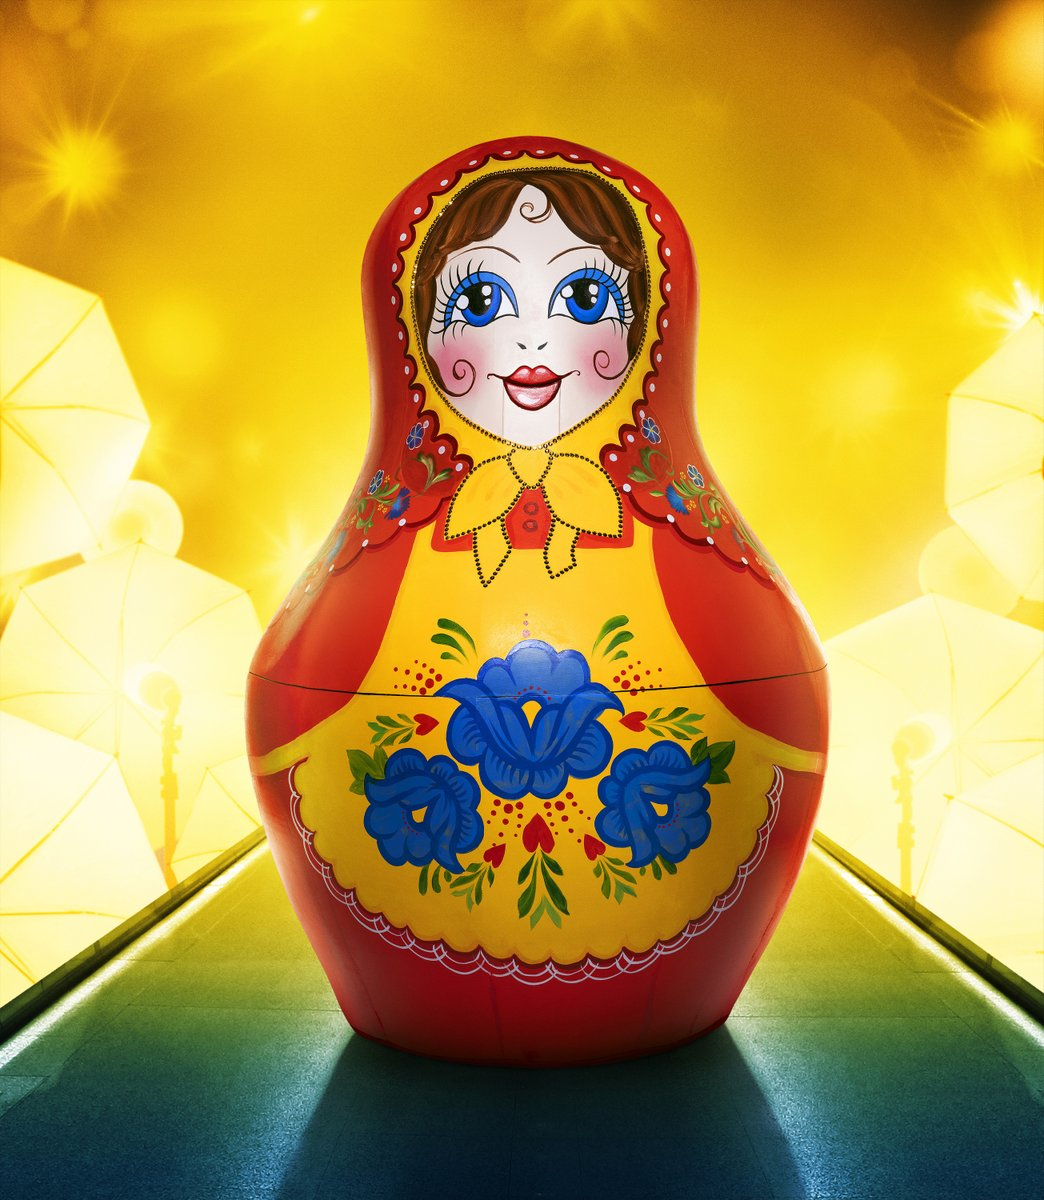 @MaskedSingerFOX Here's the official #MaskedSinger photo of the Russian Doll. In order to sing, the bottom jaw slides down, kind of like a marionette. And yes, it's a bit creepy. Premieres March 10 at 8/7c #TCA21